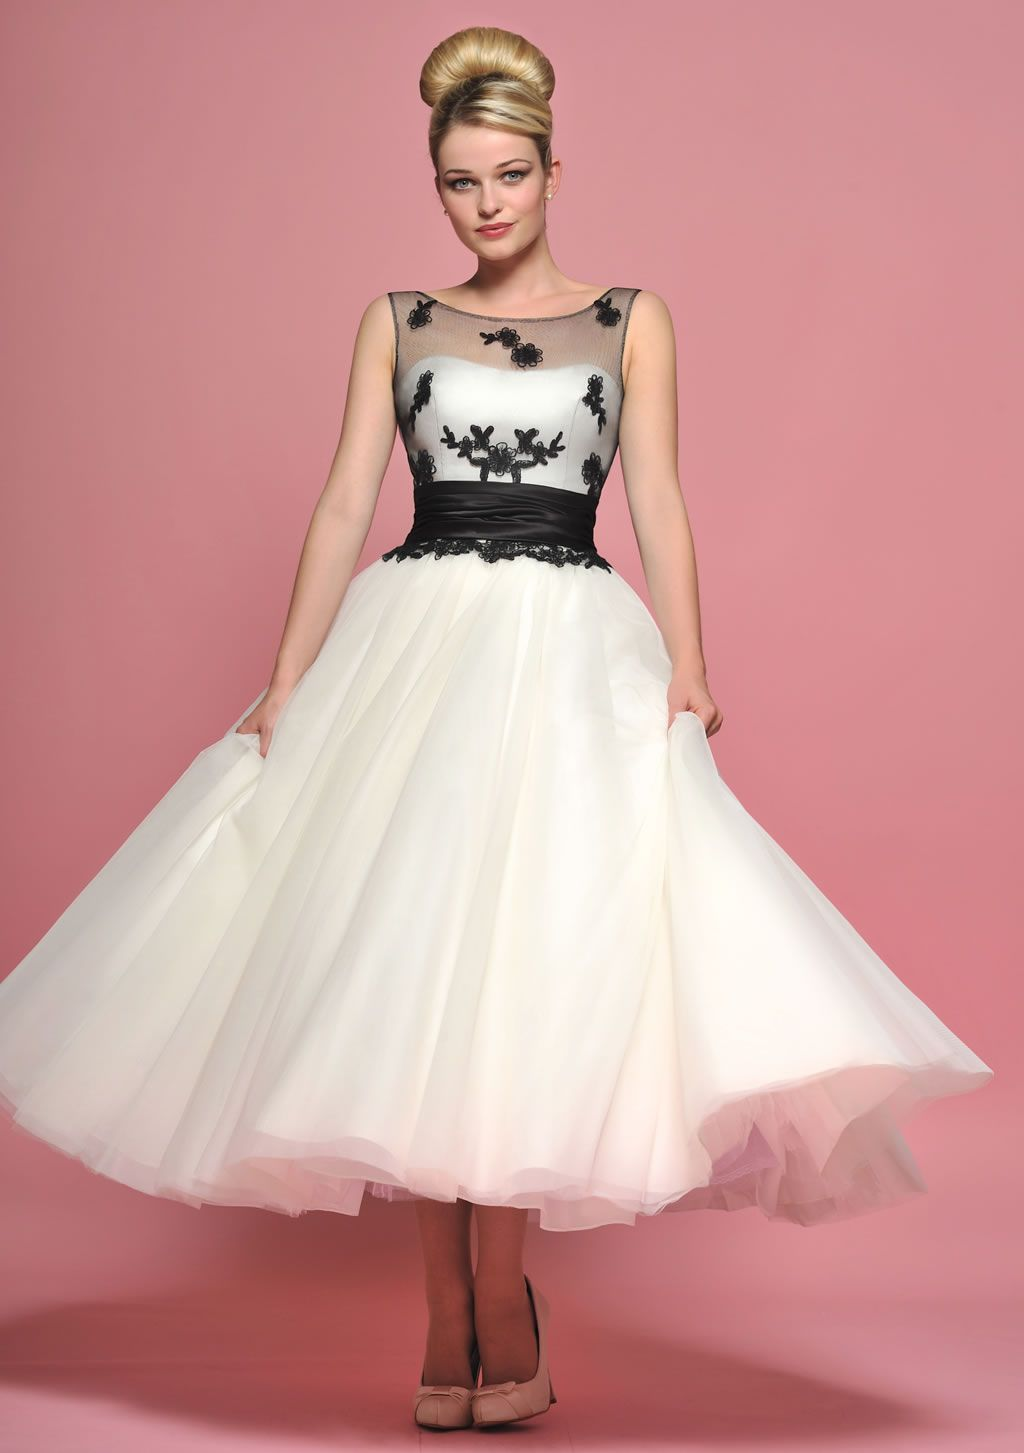 Rockabilly wedding dresses  Source yagt  Dresses  Pinterest  Gowns Frocks and Fashion boards